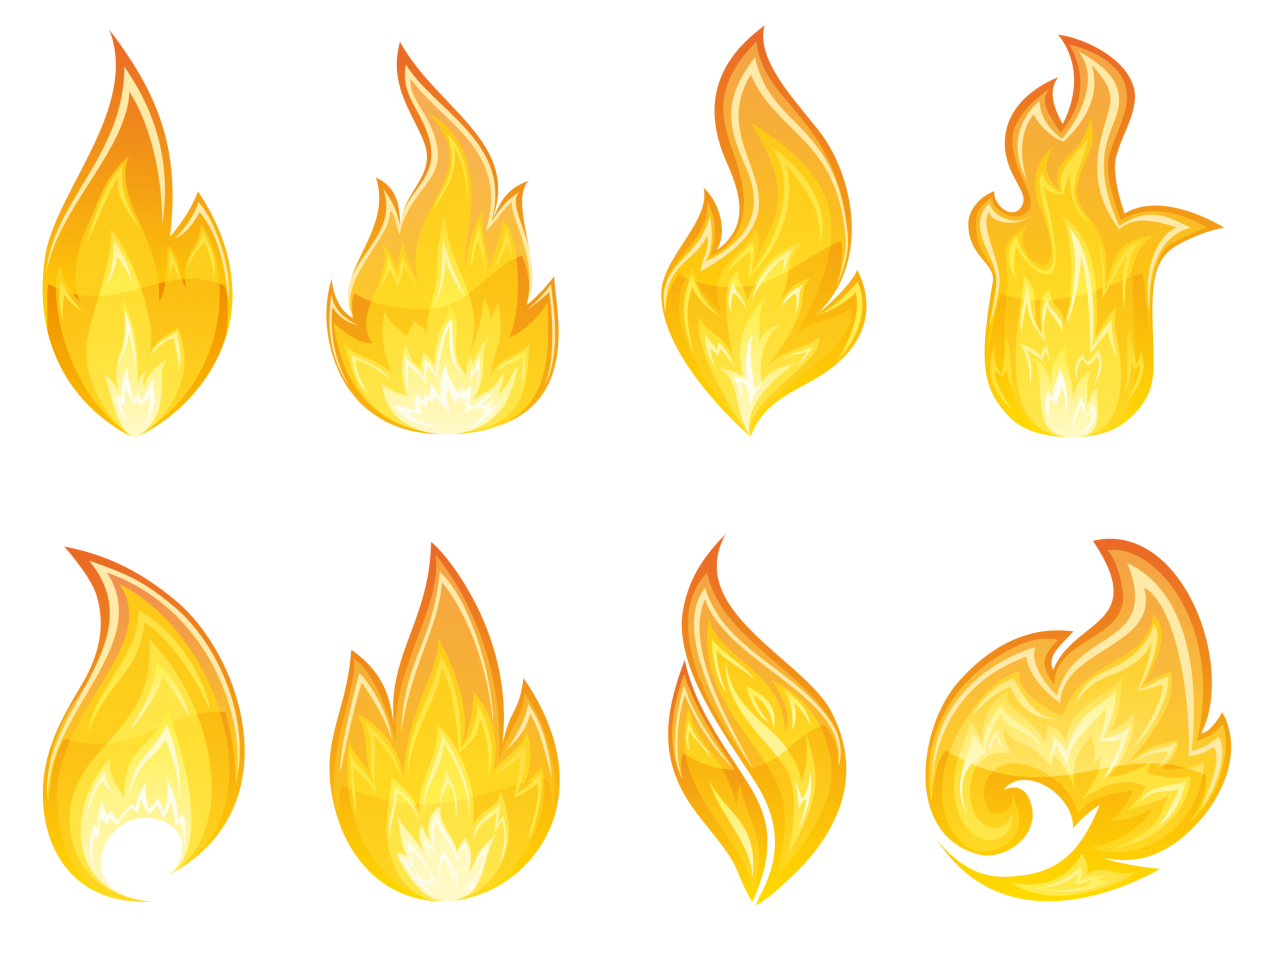 Flame Fire Collection PNG Image